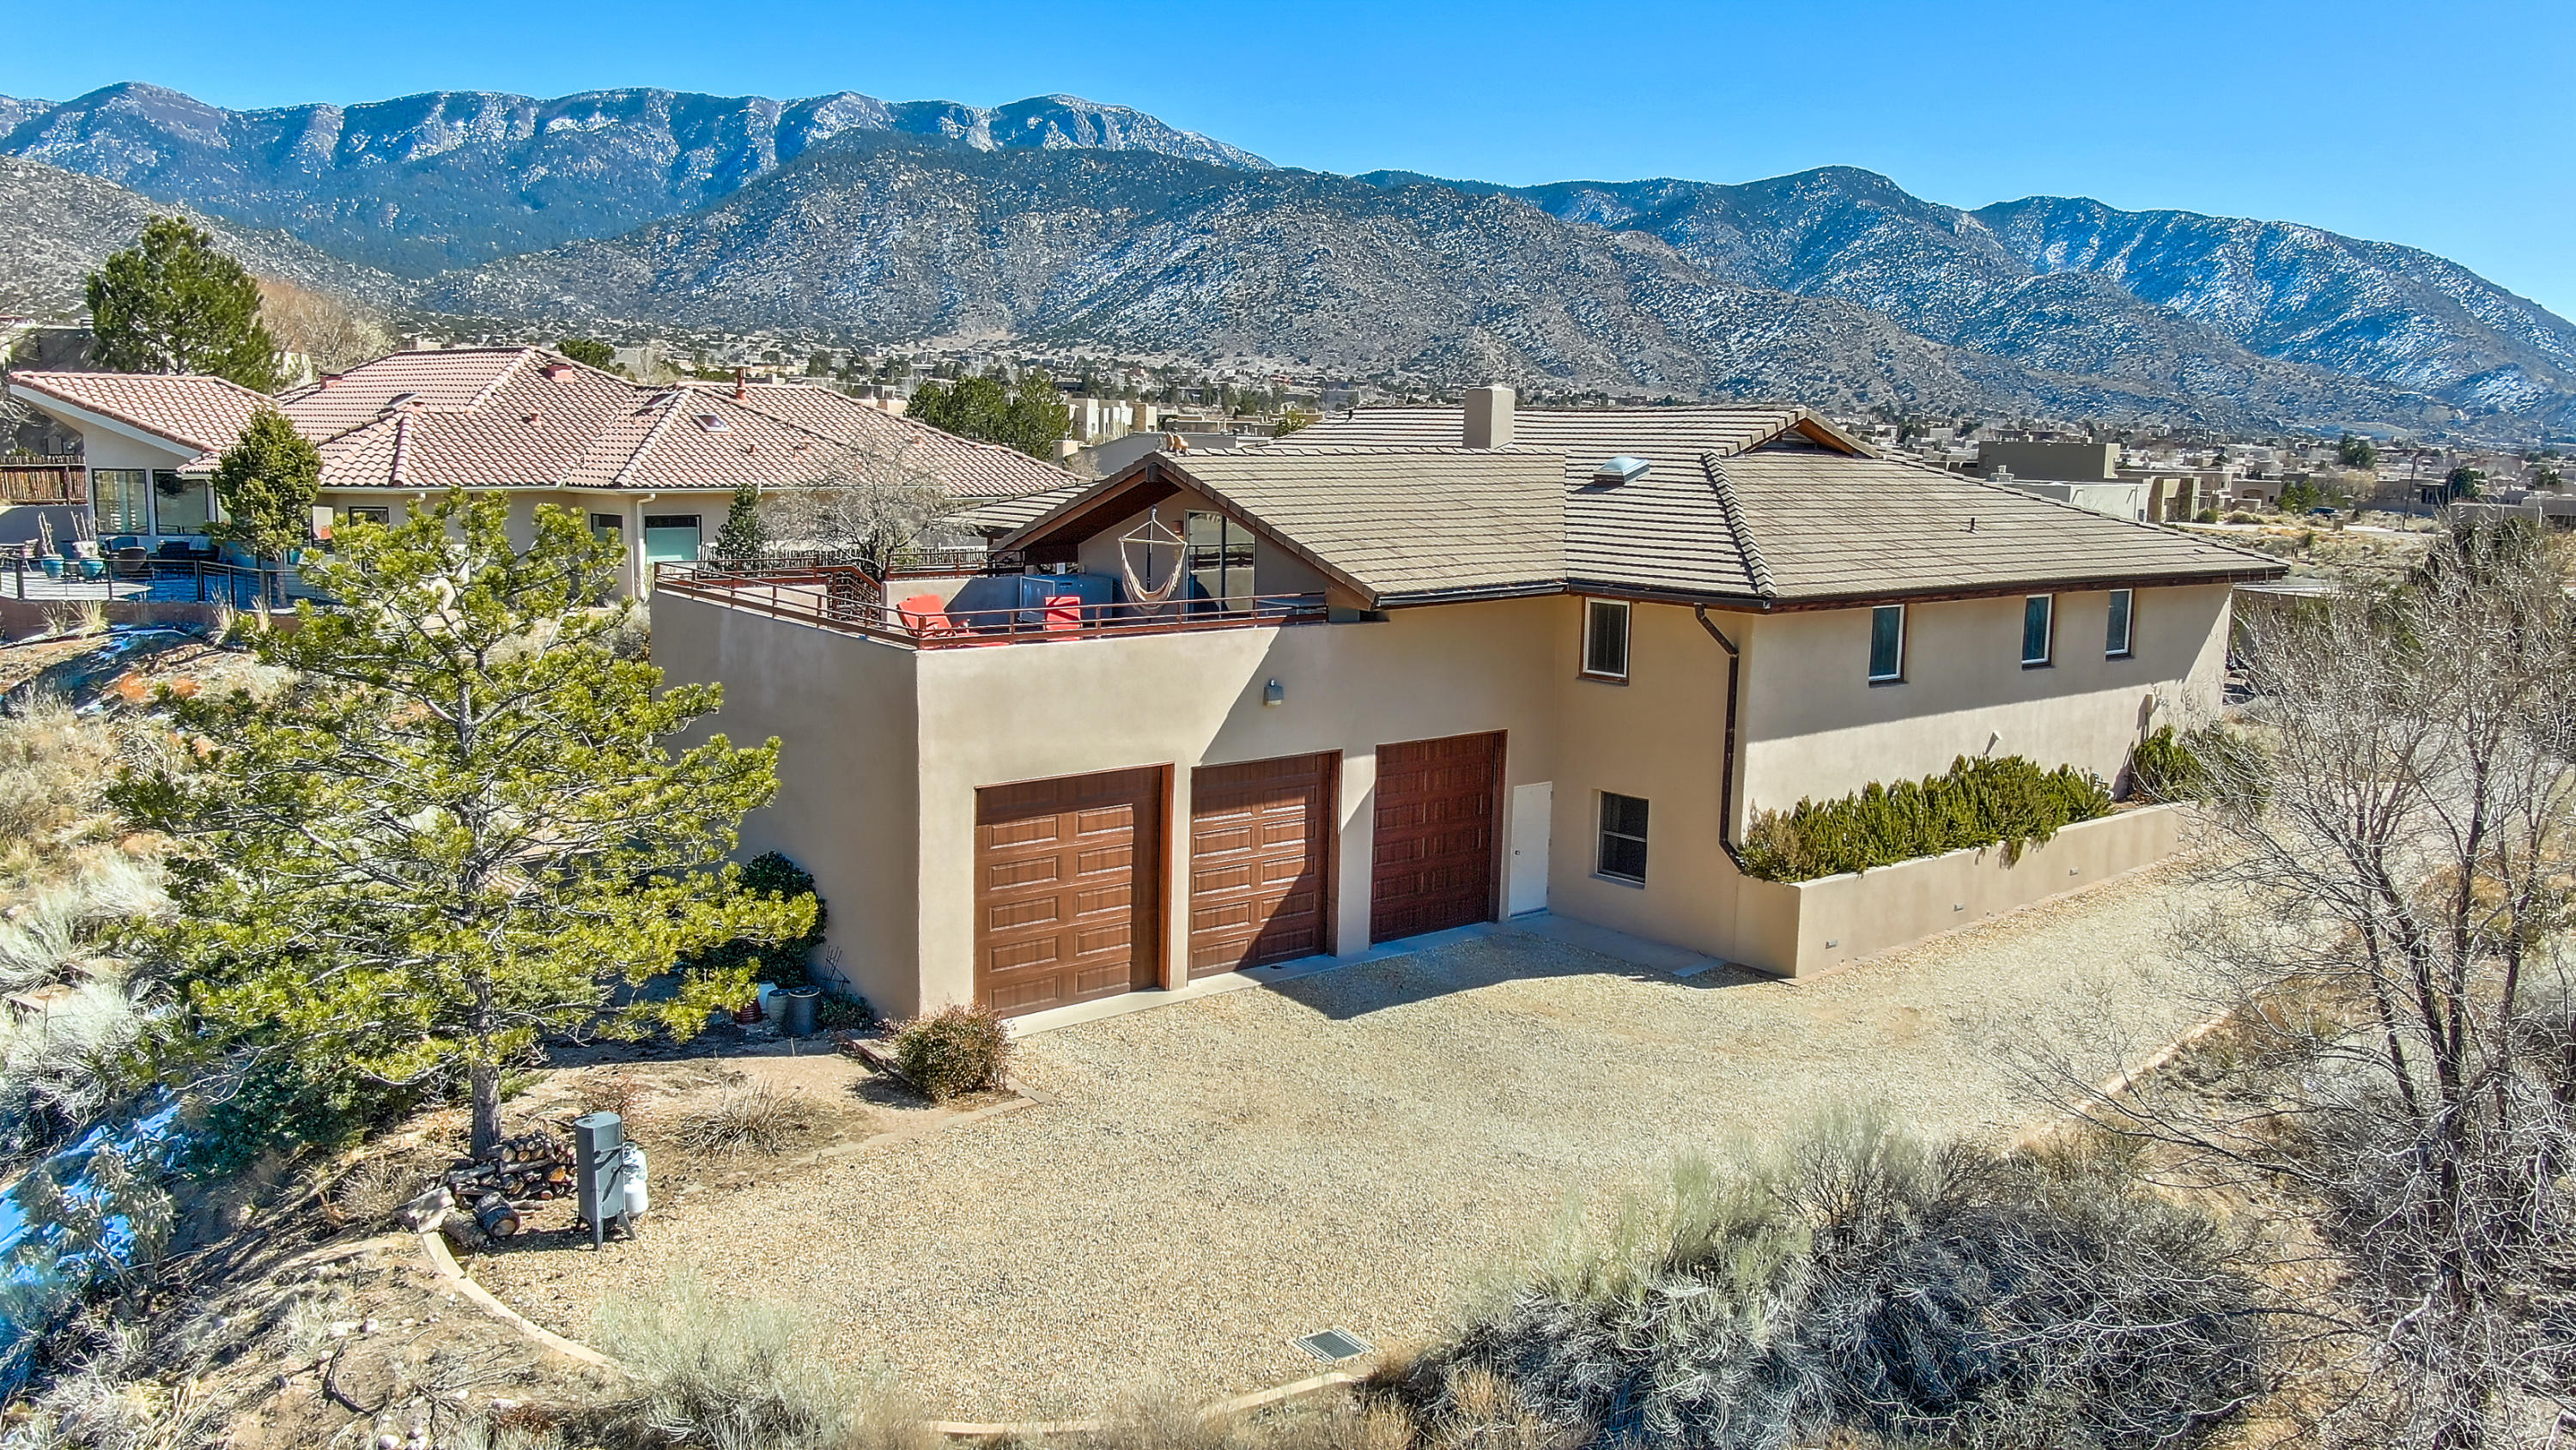 Striking estate on an elevated 1.6 acres, abutting Pino Arroyo w/wild life & magnificent views of the city & the Sandias! Elegant, octagon shaped living room is the heart of the home, a place for gatherings or snuggling by the impressive fireplace. Grazing is welcome around the kitchen island, breakfast in the banco and you'll love those casual summer evening soiree's w/majestic sunsets from the upper & lower decks! Superior quality & improvements; Adobe on CMU blocks, hand-scraped walnut & travertine floors, Pella windows/doors, custom cabinetry, 2-story atrium designed for passive solar - awesome yoga space! Owners suite w/jetted tub & steam shower, big rooms w/views, updated baths, fabulous 49 x 25 Rec room, flex room, storage & a 3-car garage w/oversized RV bay! It's an ABQ Dream Home!